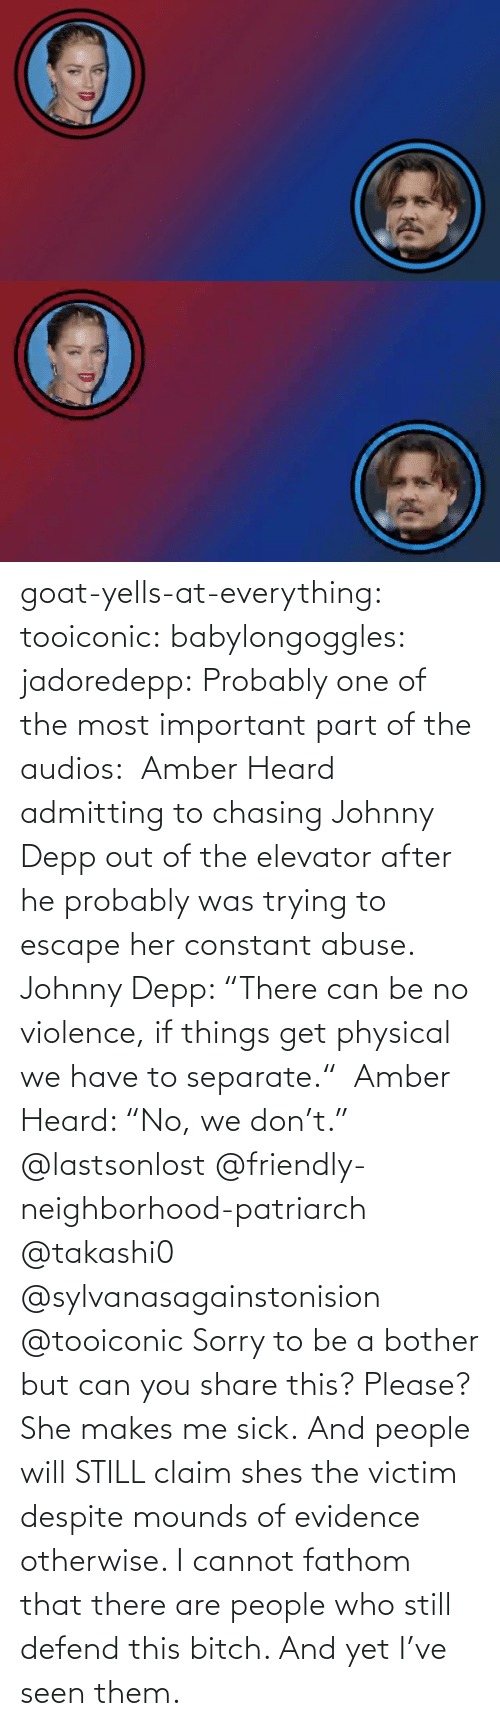 "abuse: goat-yells-at-everything:  tooiconic:  babylongoggles:  jadoredepp:  Probably one of the most important part of the audios:  Amber Heard admitting to chasing Johnny Depp out of the elevator after he probably was trying to escape her constant abuse.  Johnny Depp: ""There can be no violence, if things get physical we have to separate.""  Amber Heard: ""No, we don't.""  @lastsonlost @friendly-neighborhood-patriarch @takashi0 @sylvanasagainstonision @tooiconic Sorry to be a bother but can you share this? Please?   She makes me sick.   And people will STILL claim shes the victim despite mounds of evidence otherwise.    I cannot fathom that there are people who still defend this bitch. And yet I've seen them."